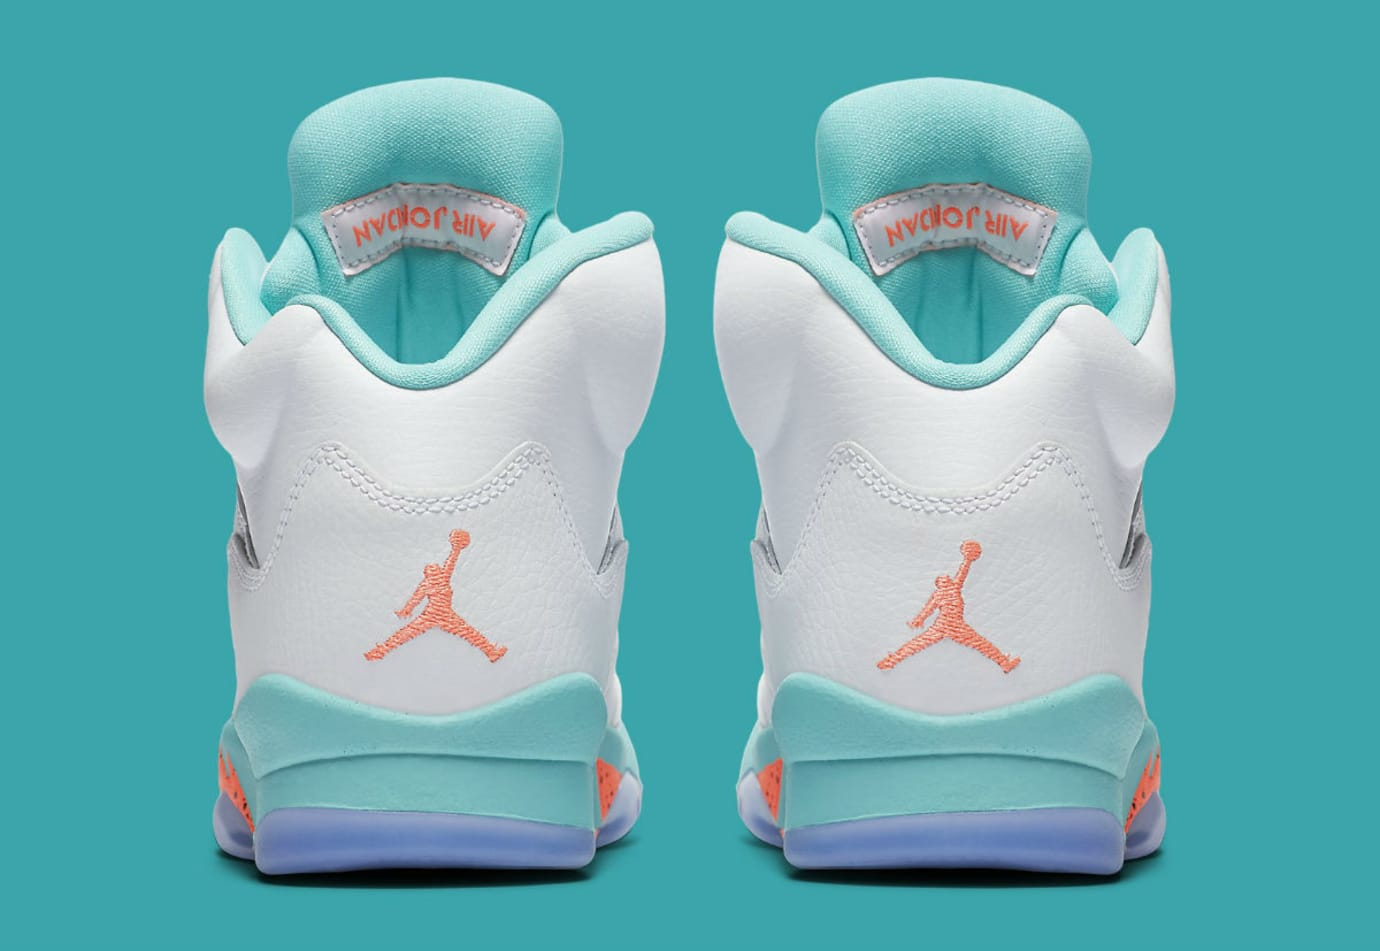 newest collection c3d1a 7ac70 Image via Nike Air Jordan 5 V GS White Crimson Pulse Light Aqua Release  Date 440892-100 Heel